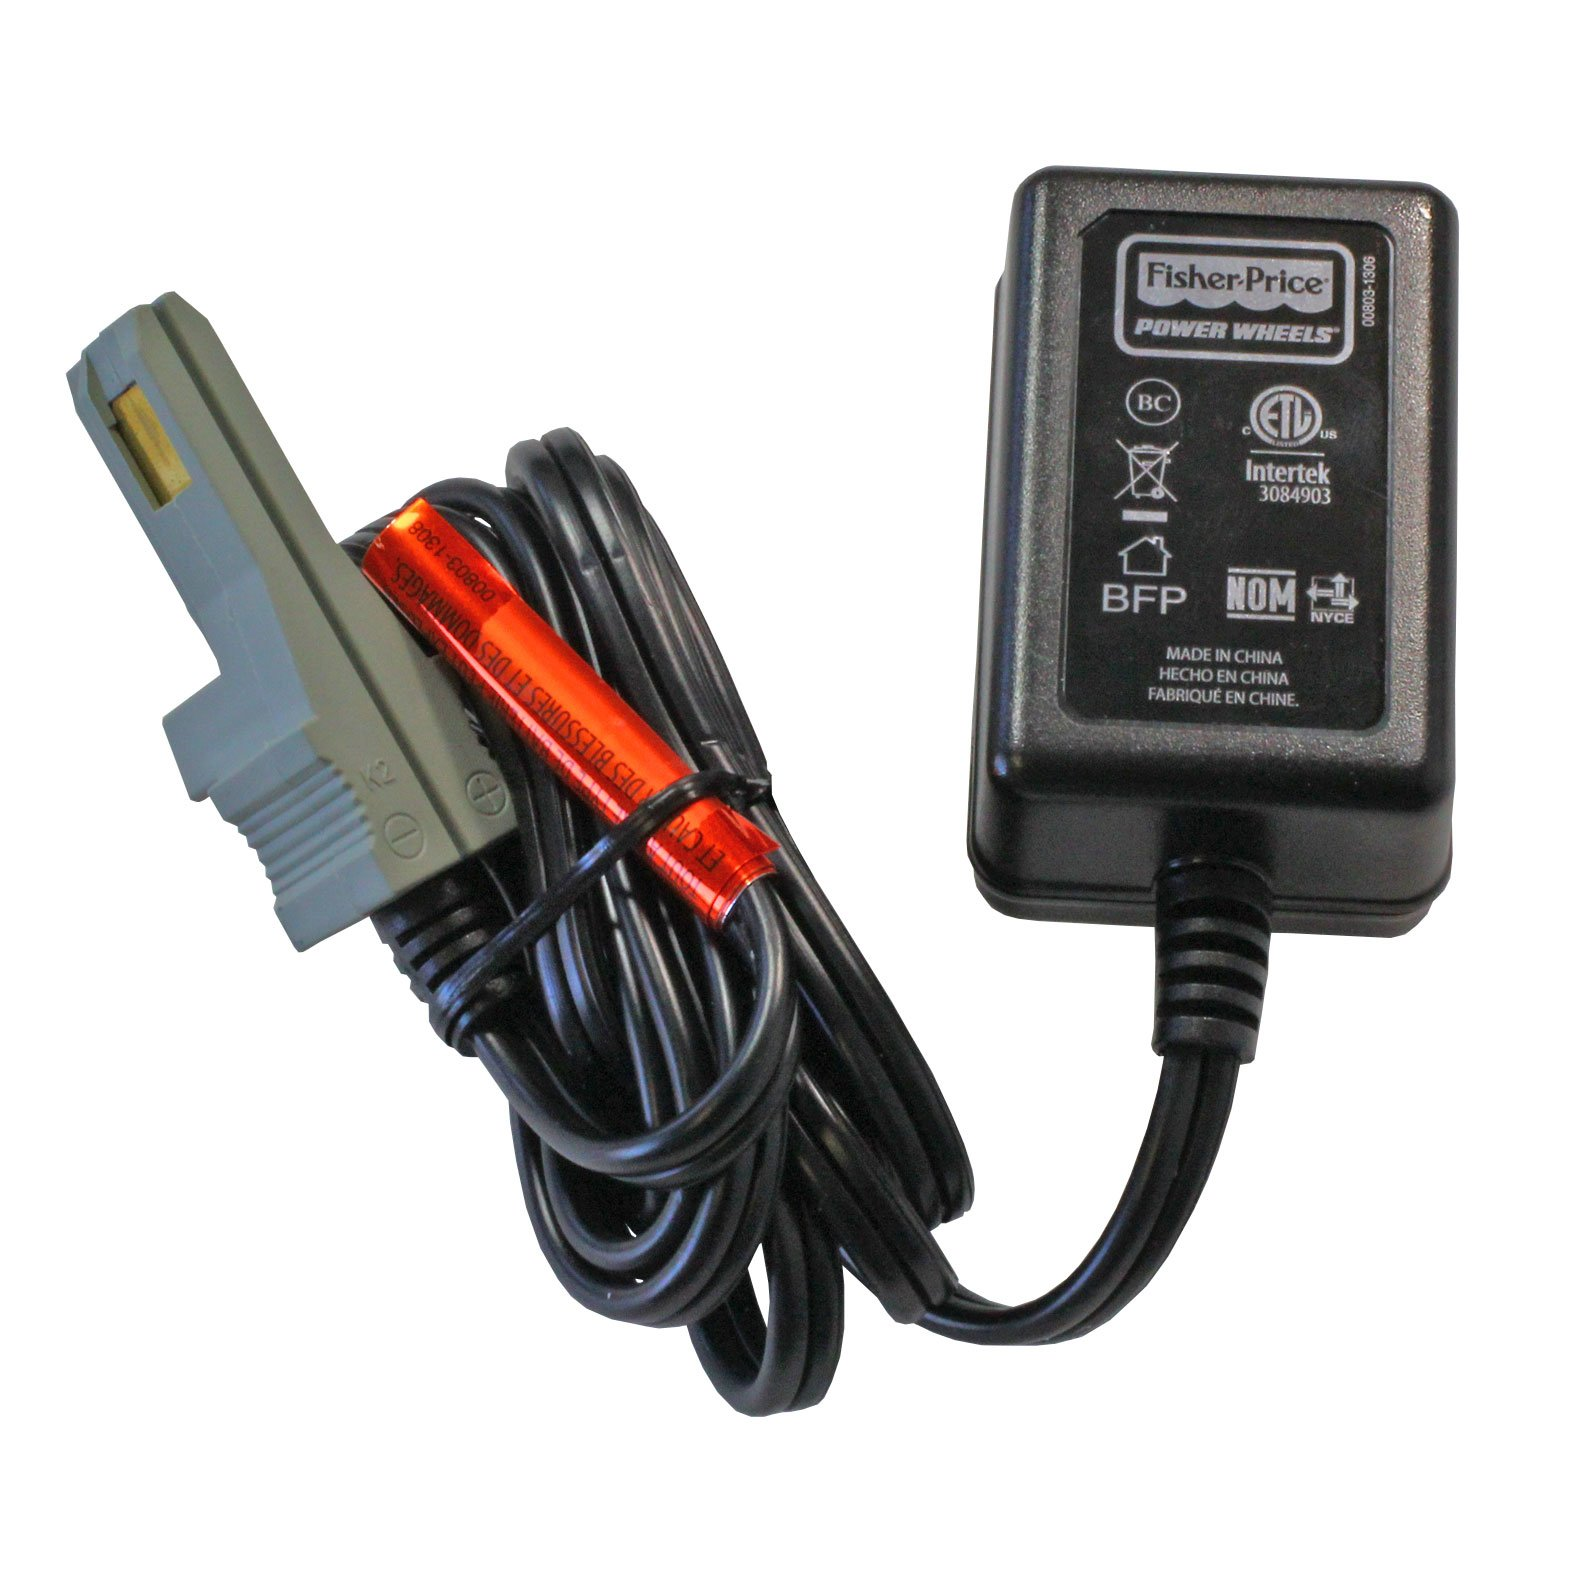 12 volt probe power wheels battery charger for gray and orange batteries